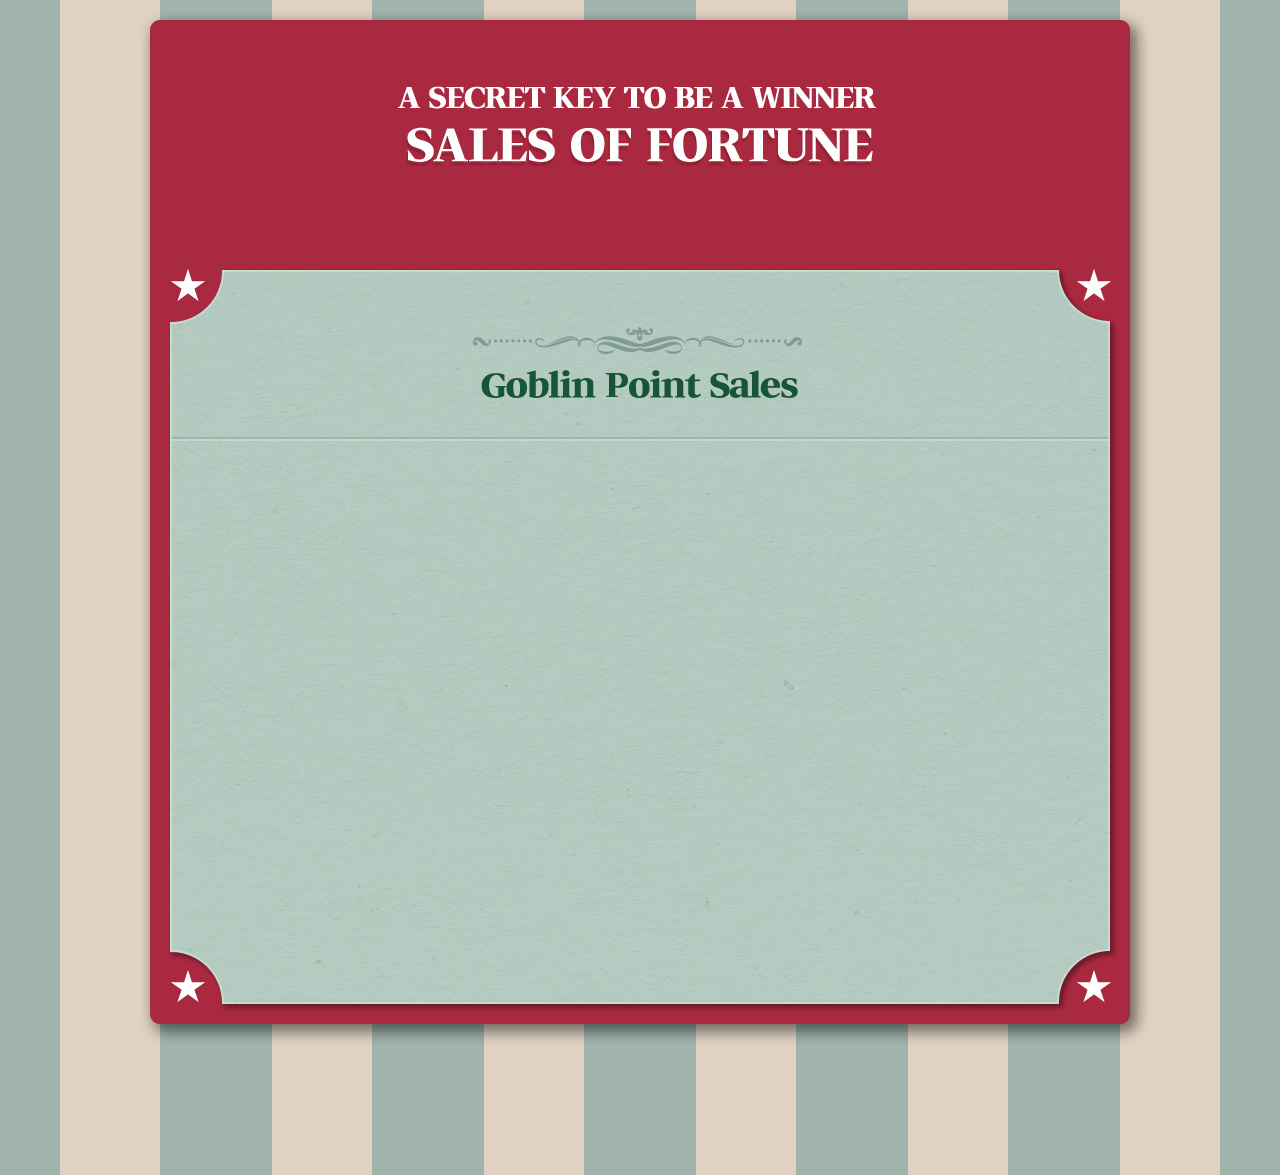 Sales of Fortune